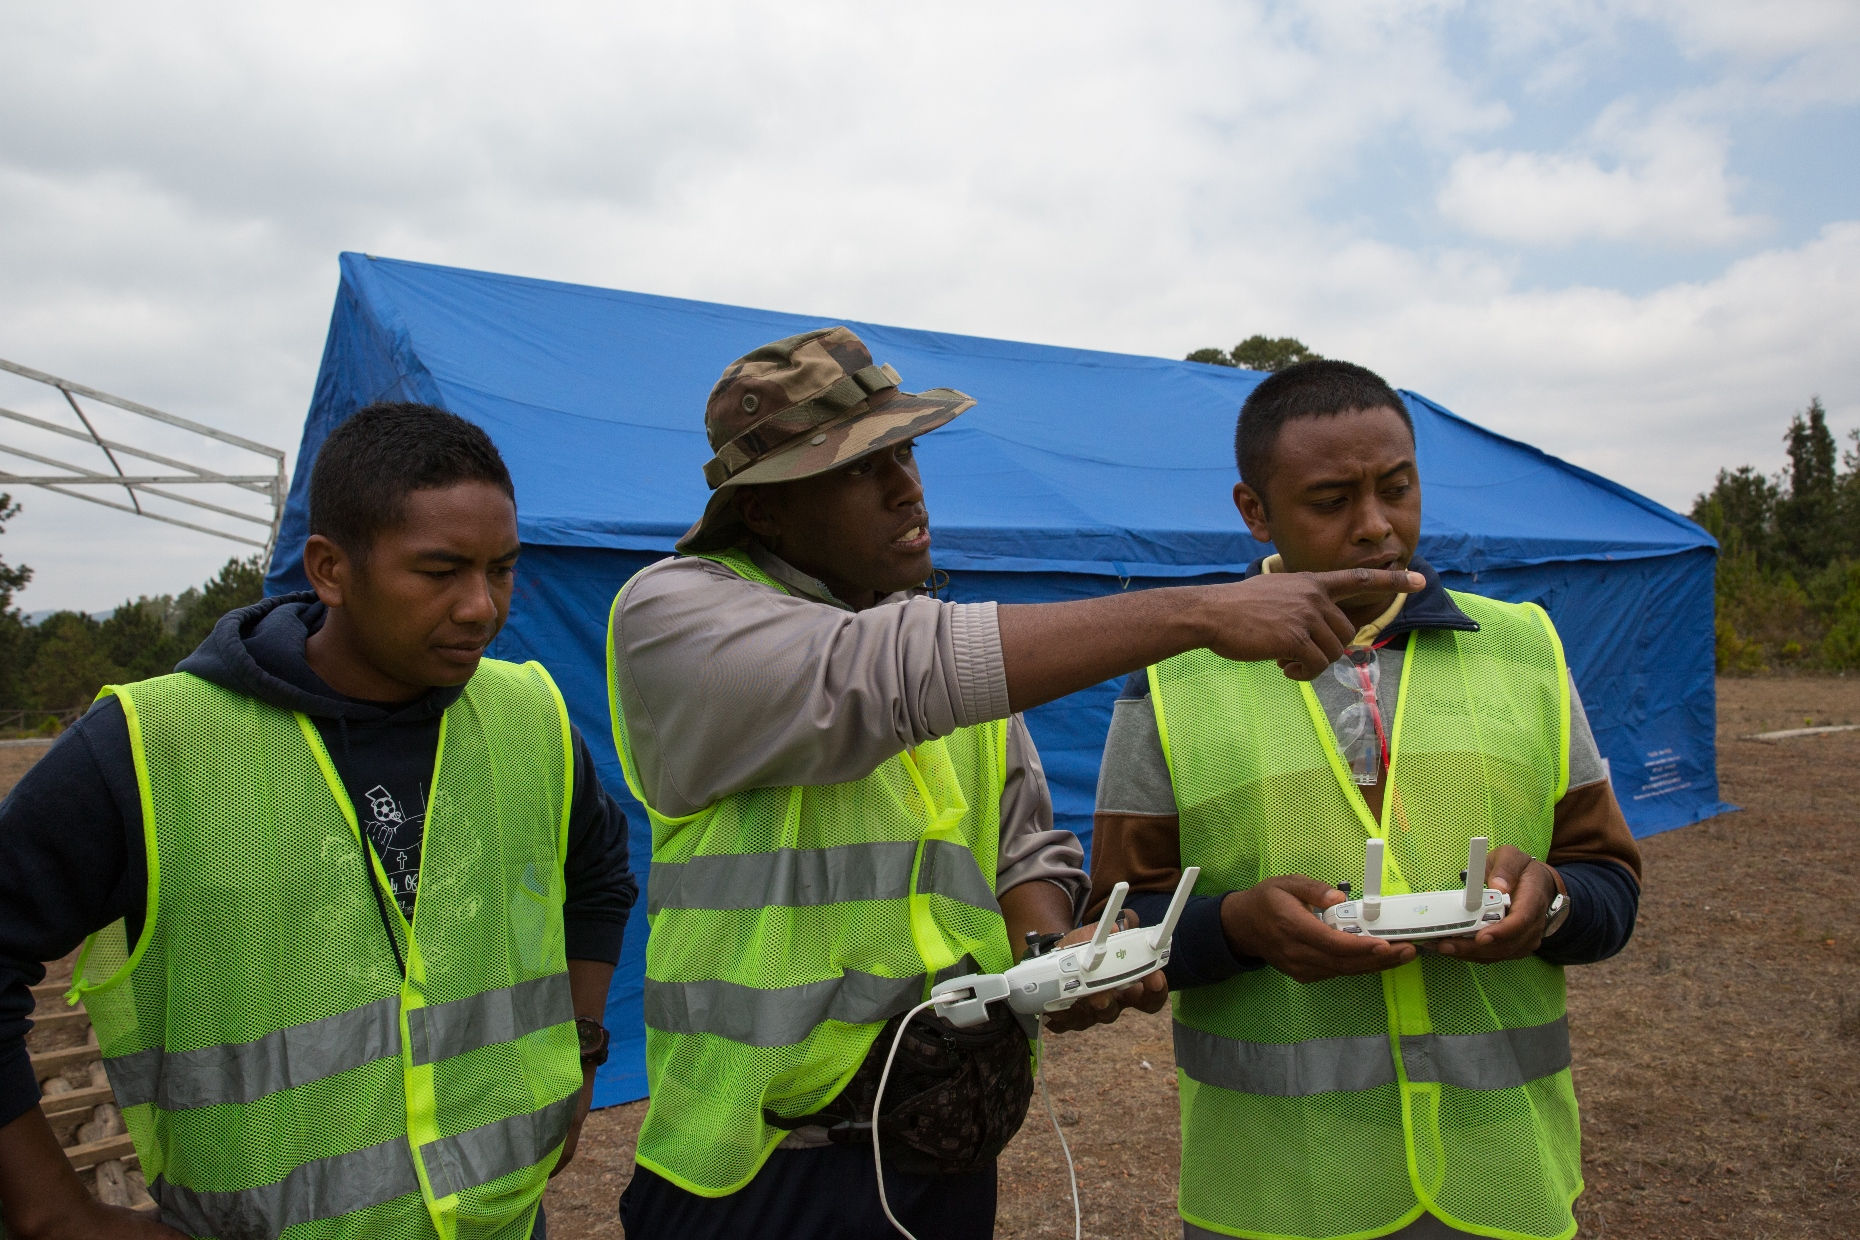 006_Training%20with%20drones%20picture%20WFP%202.jpg